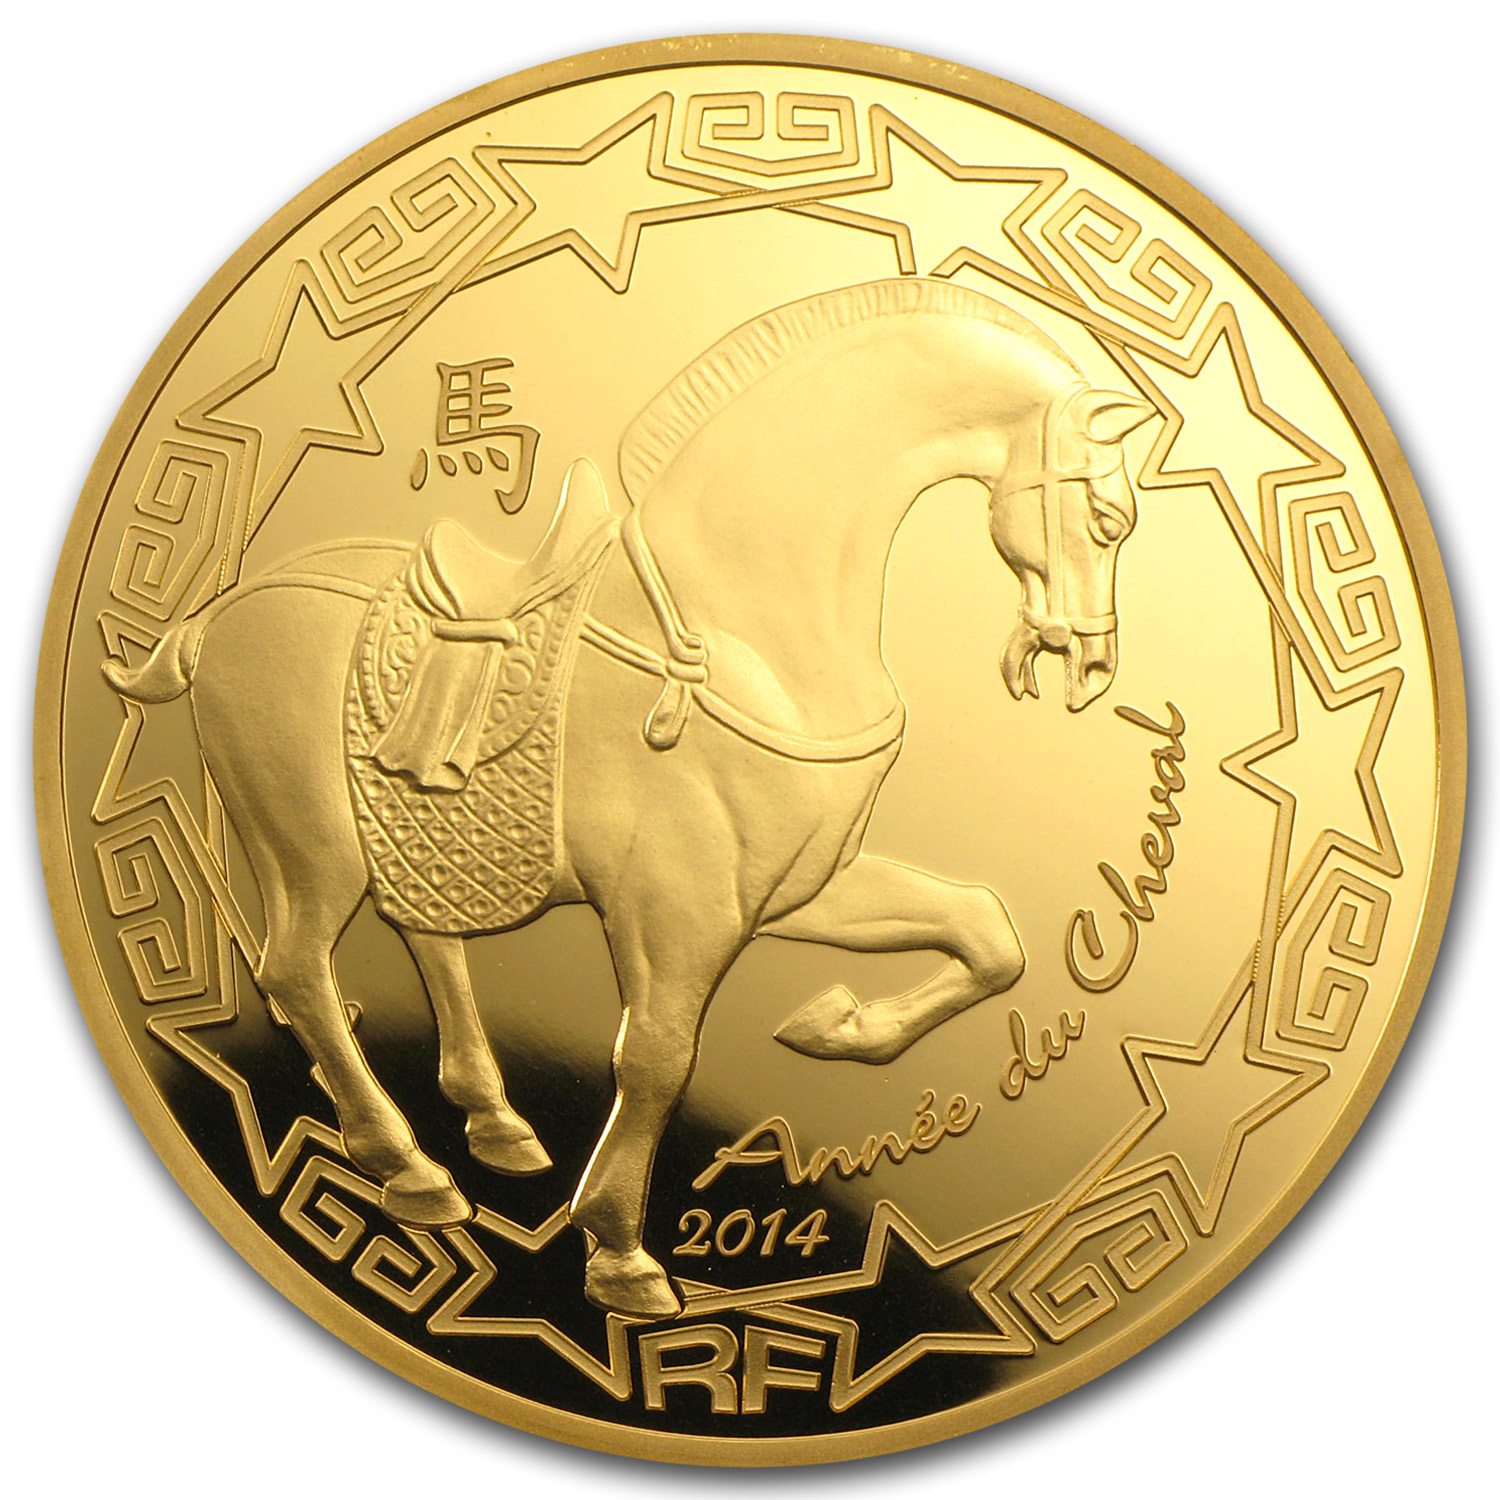 2014 1 oz Gold Proof Year of the Horse (€200) - Lunar Series